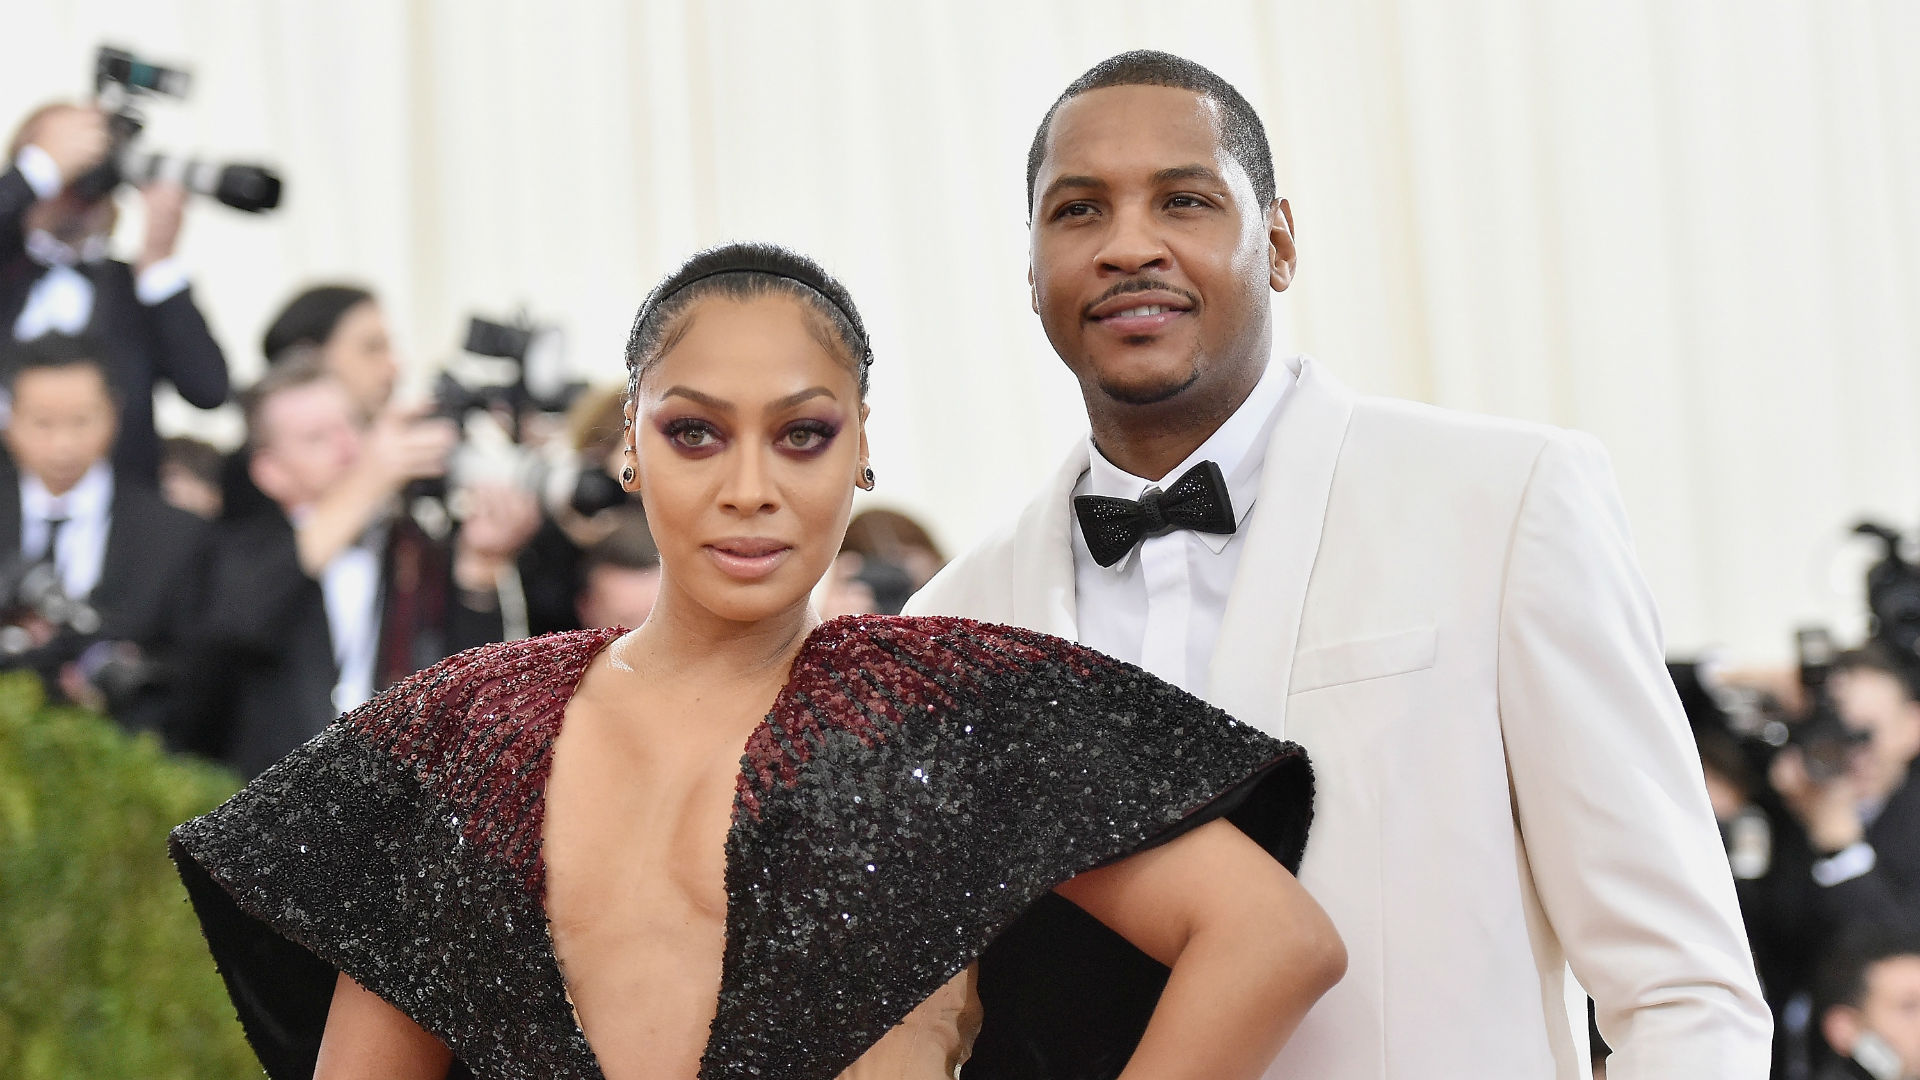 La La Anthony files for divorce from Carmelo Anthony, according to report